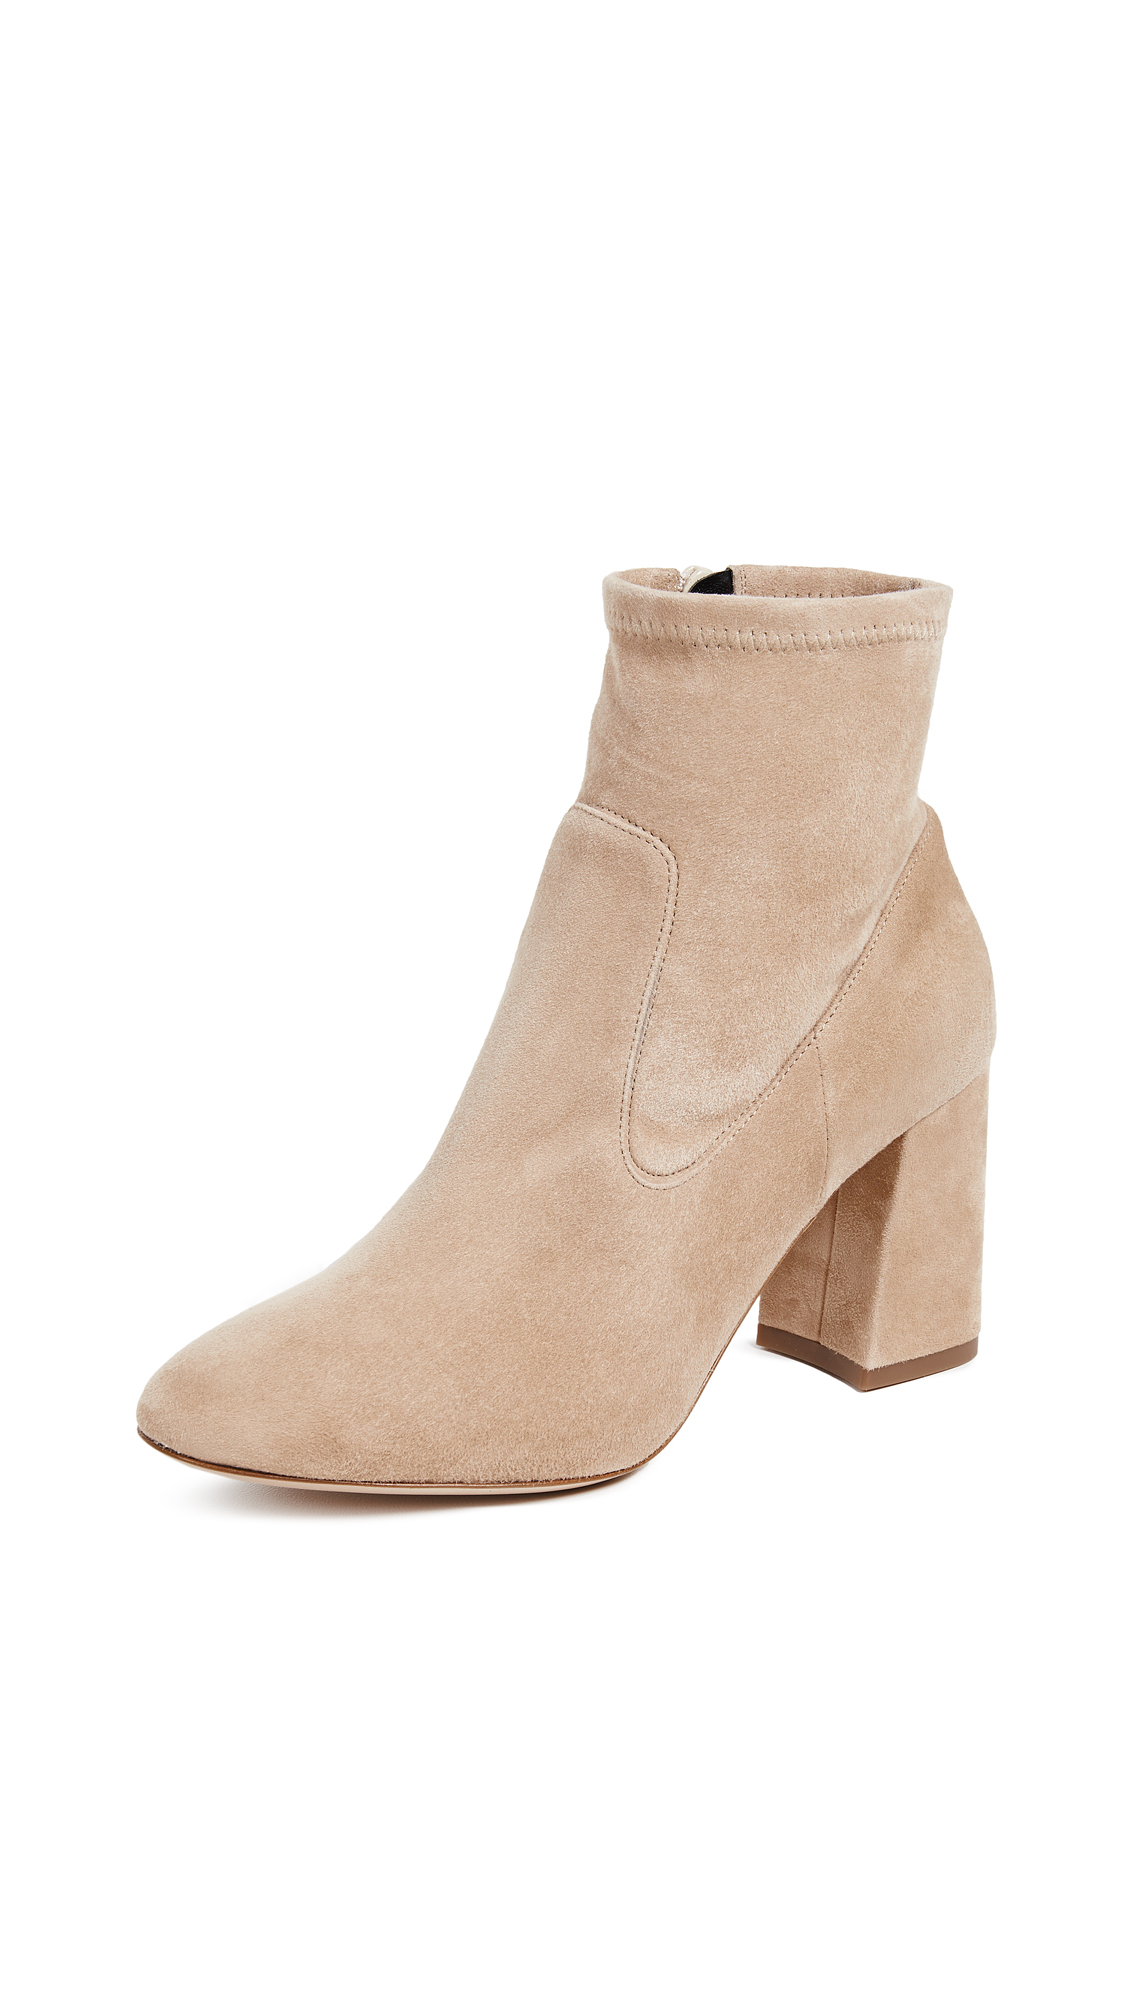 Club Monaco Rhona Booties - Camel